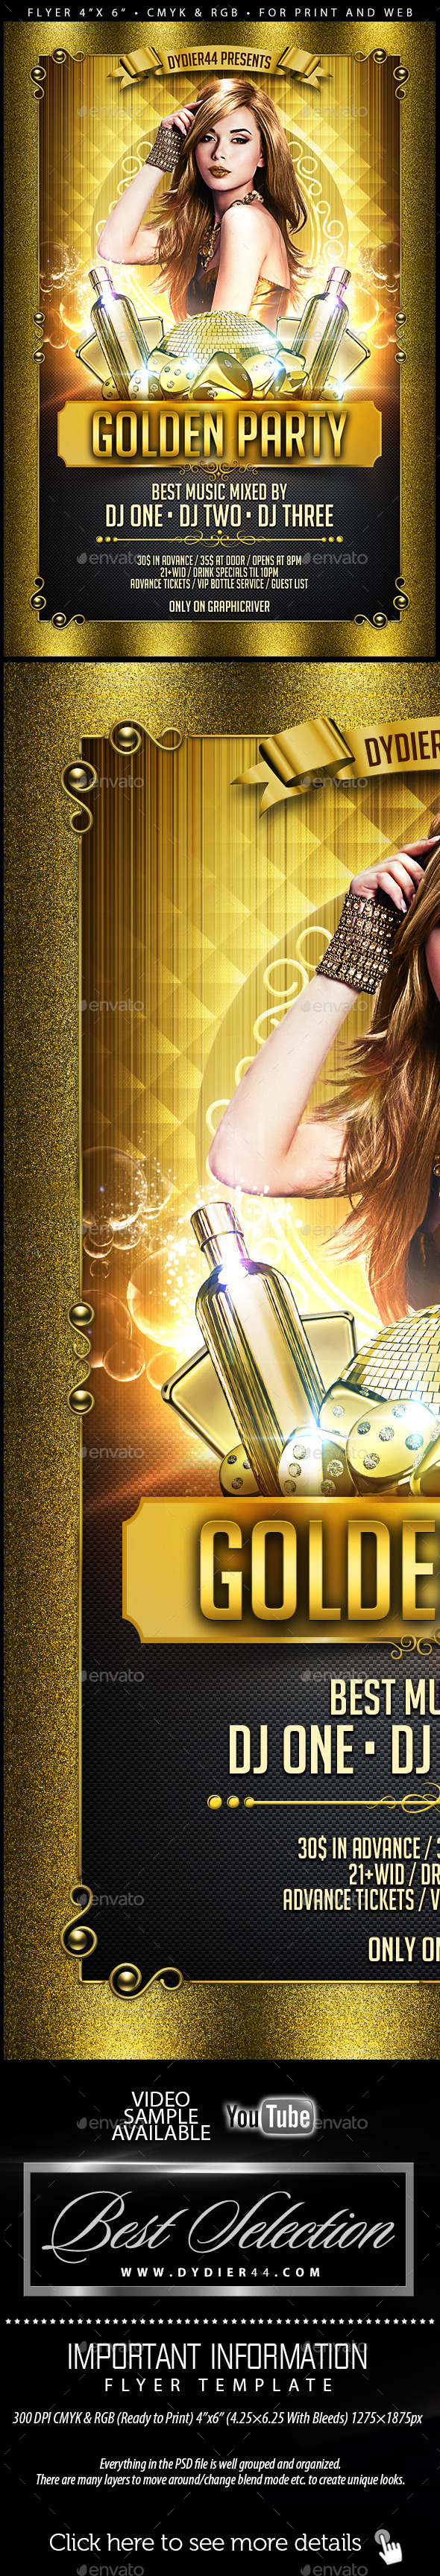 Golden Party (Flyer Template 4x6) - Clubs & Parties Events